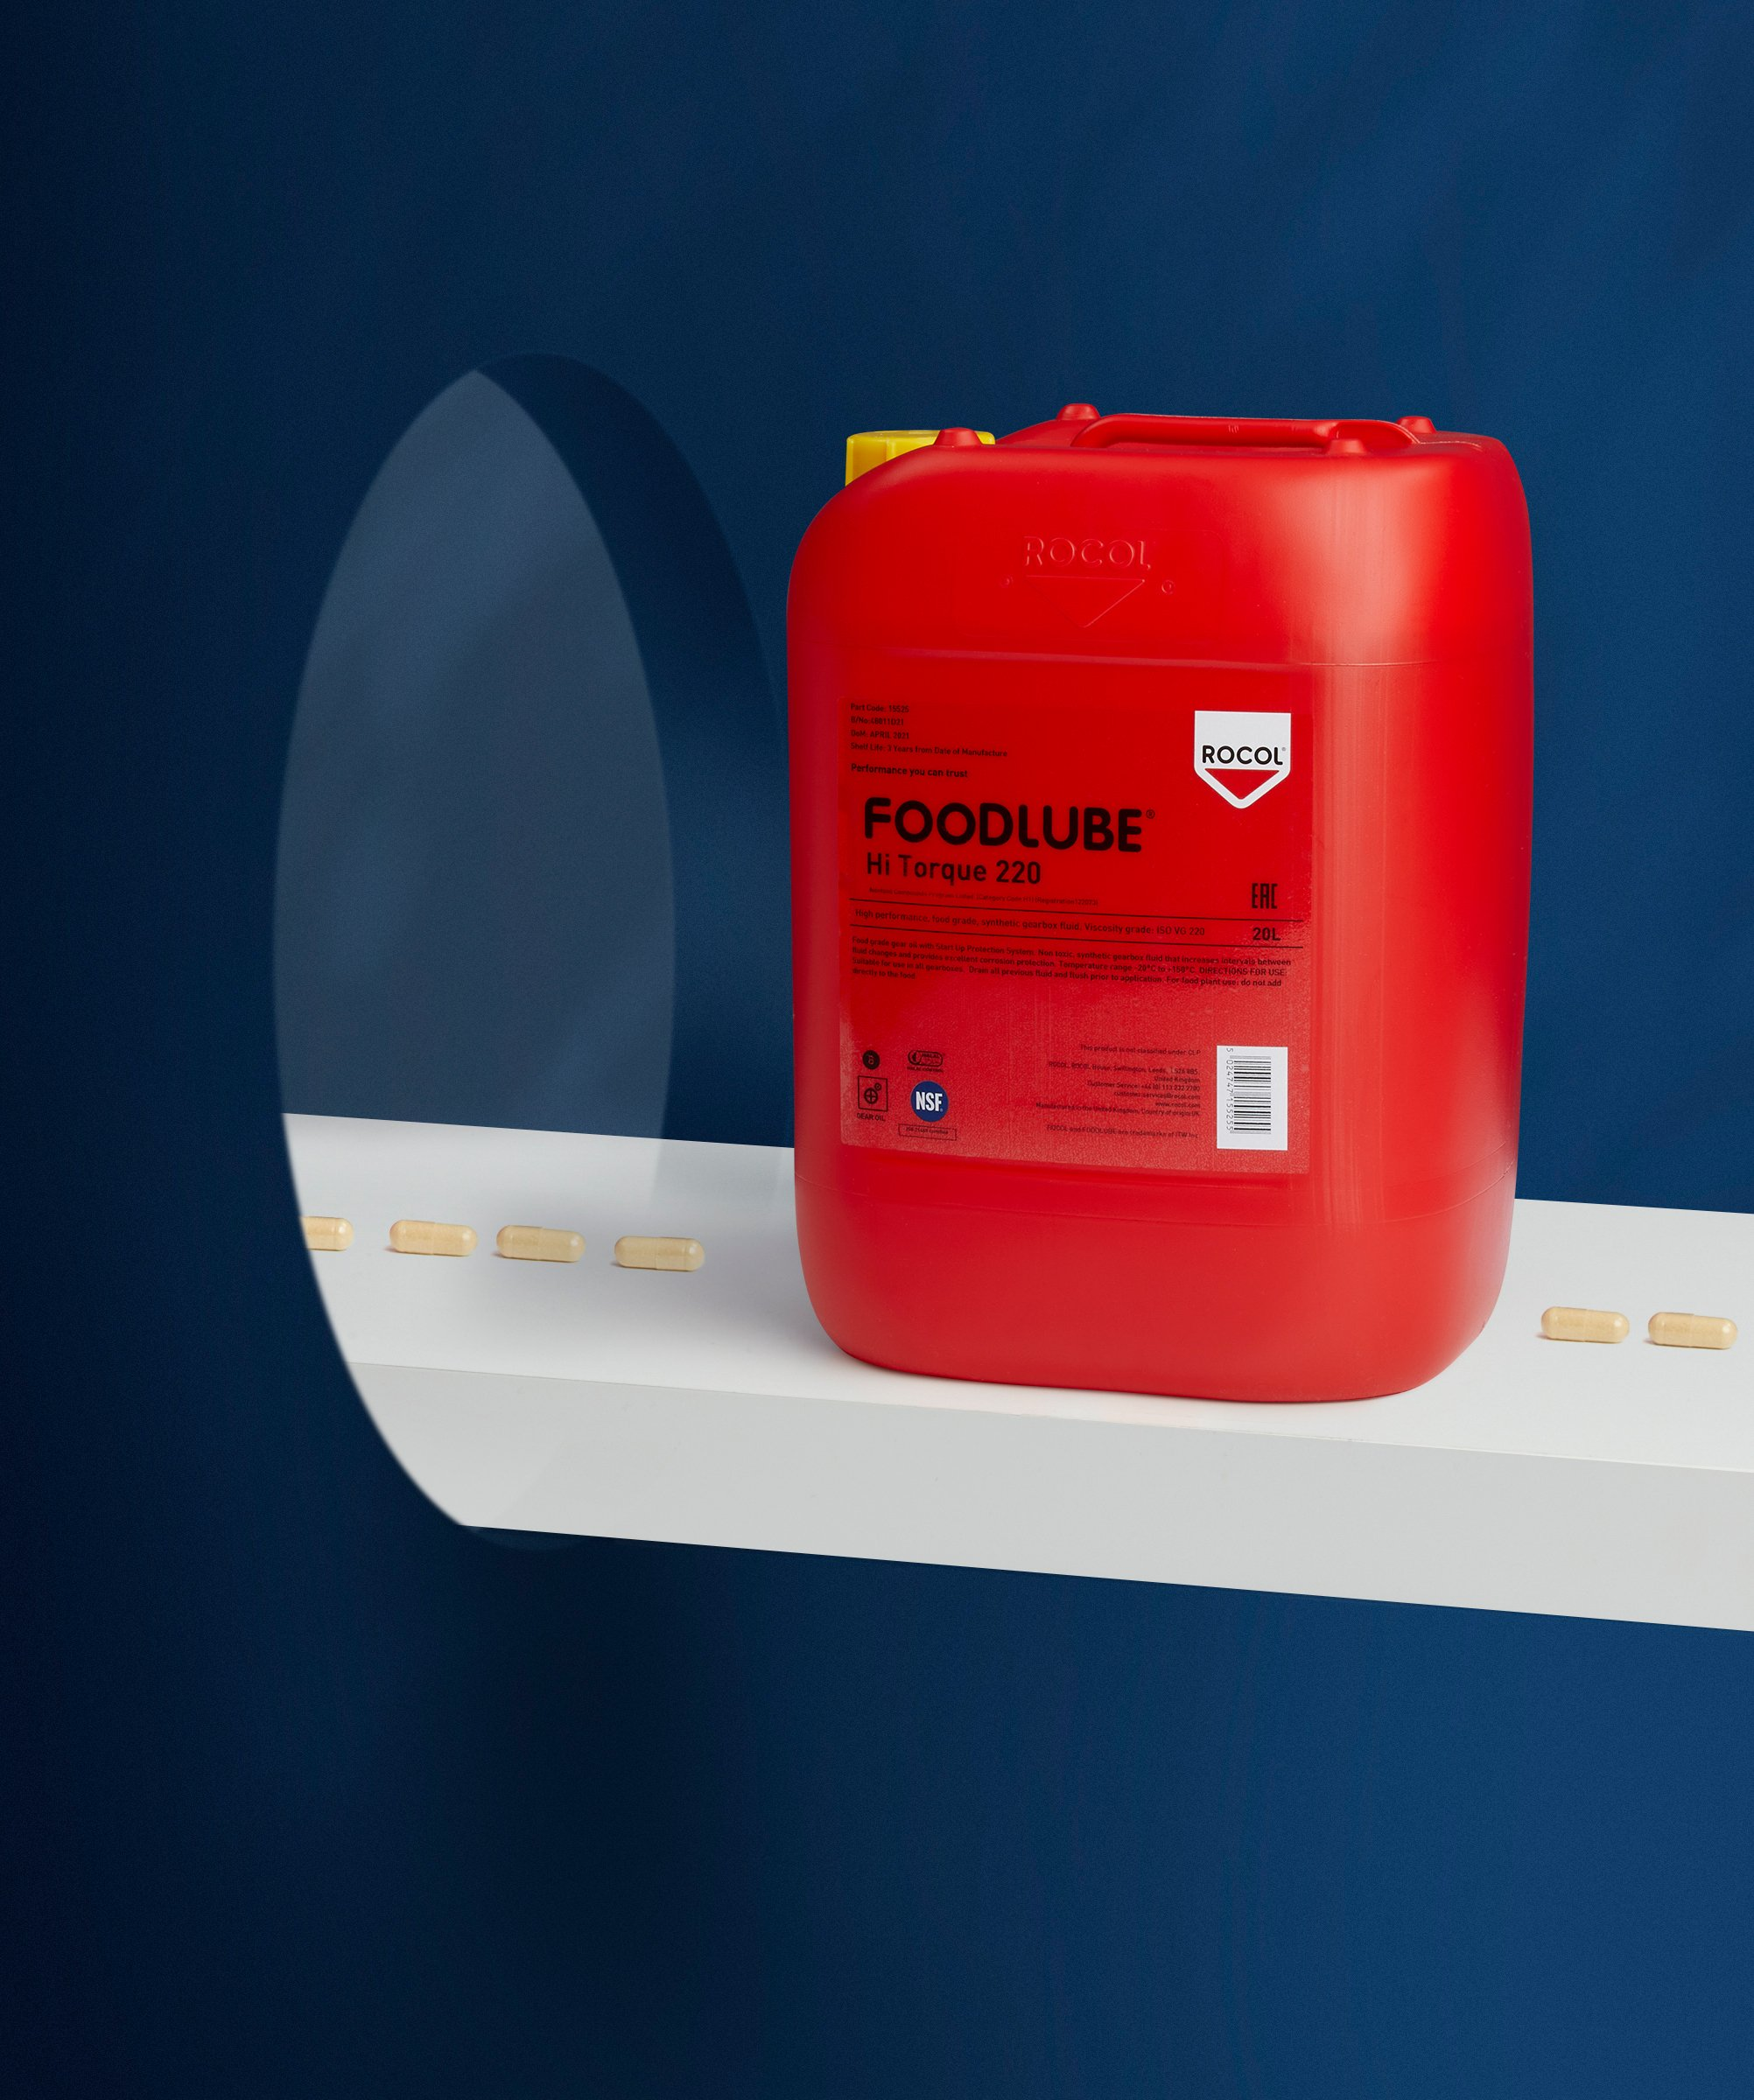 ROCOL Product Industrial Photography